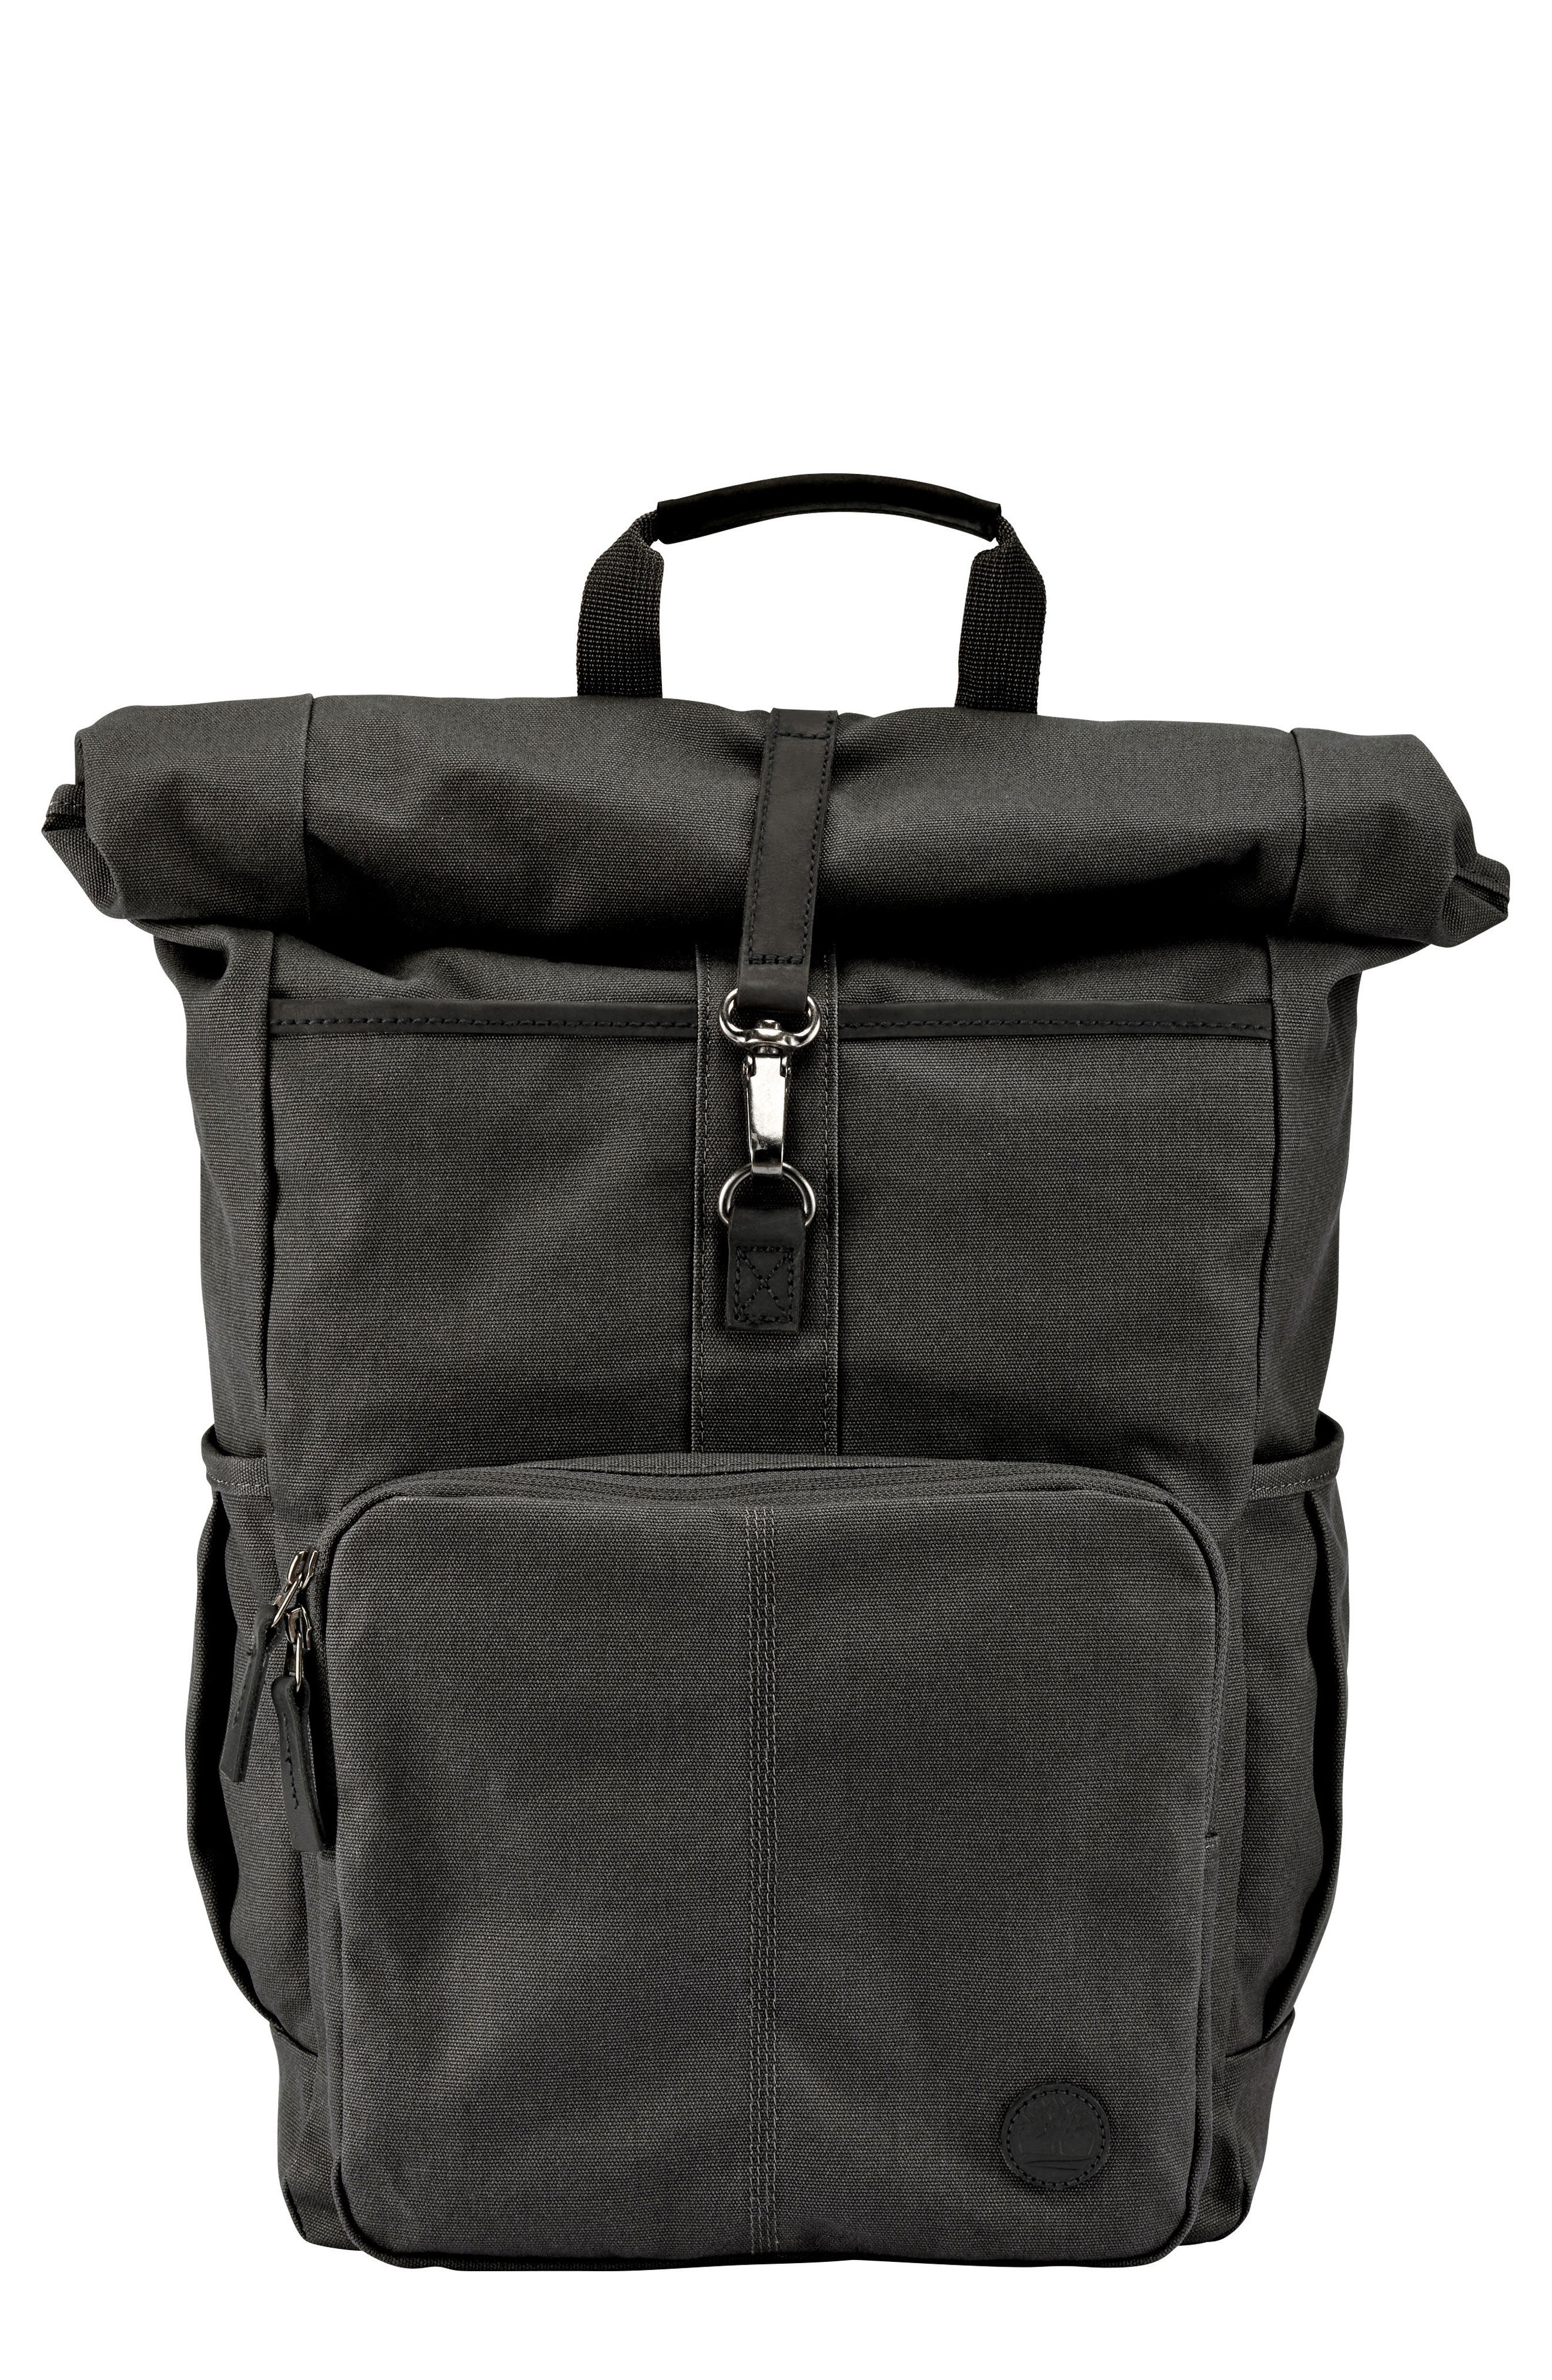 Walnut Hill Rolltop Backpack,                             Main thumbnail 1, color,                             008